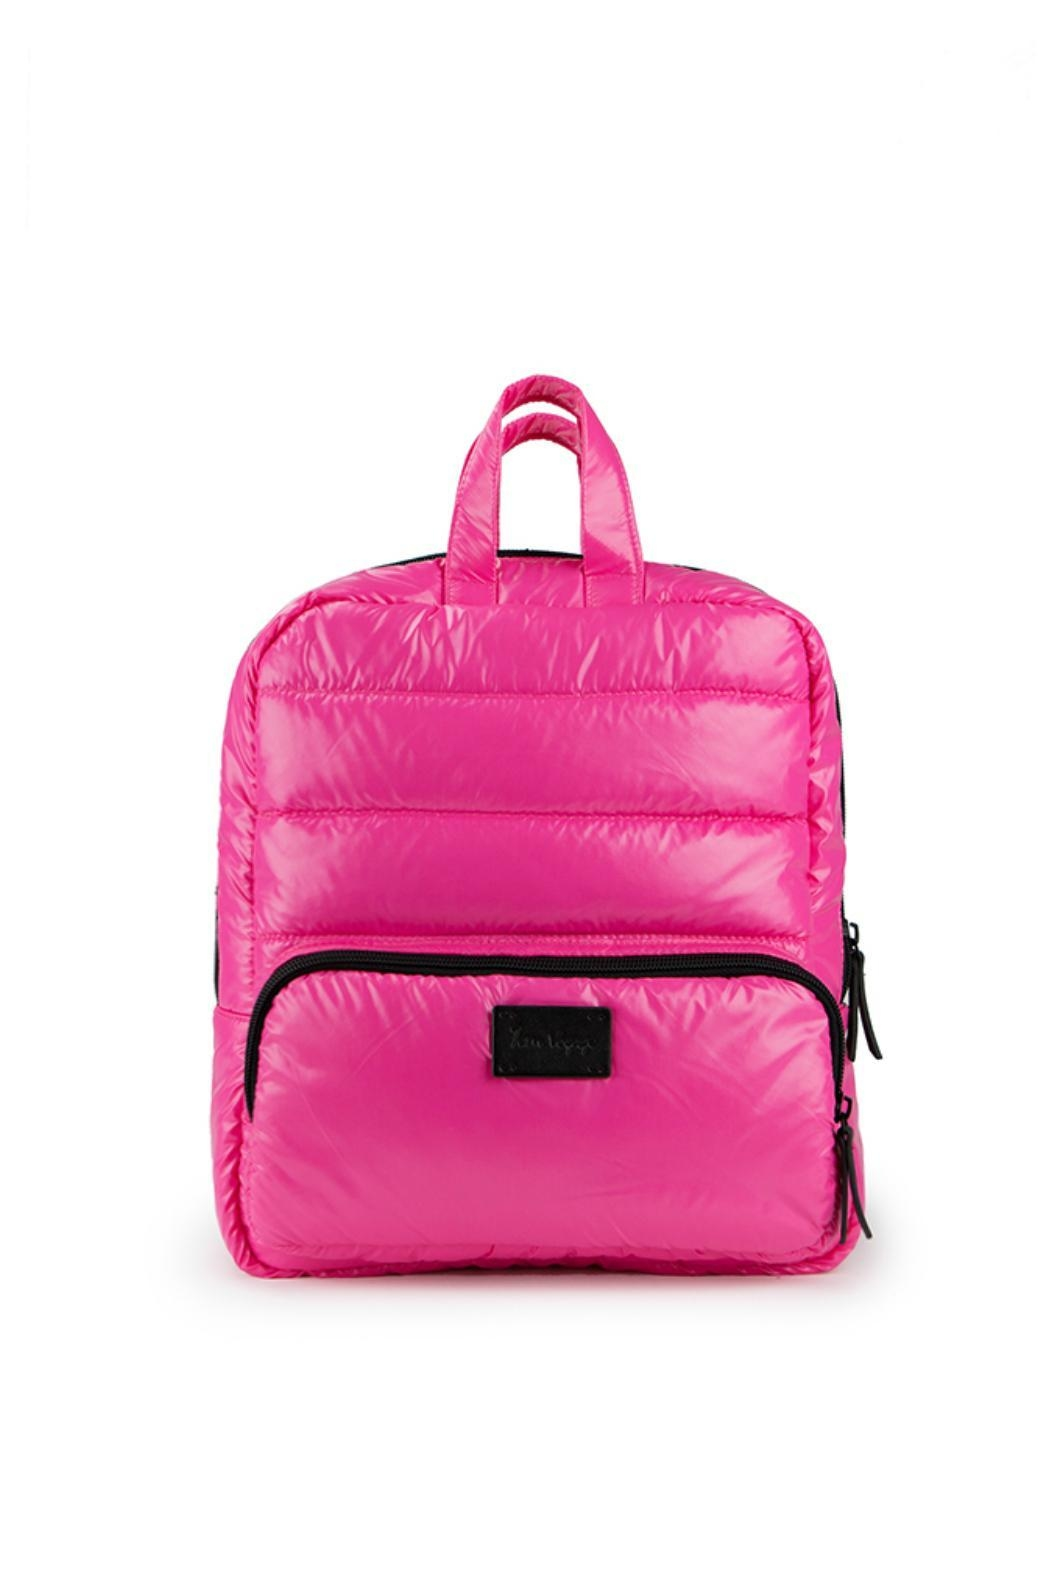 7AM Enfant Mini Nylon Backpack - Main Image